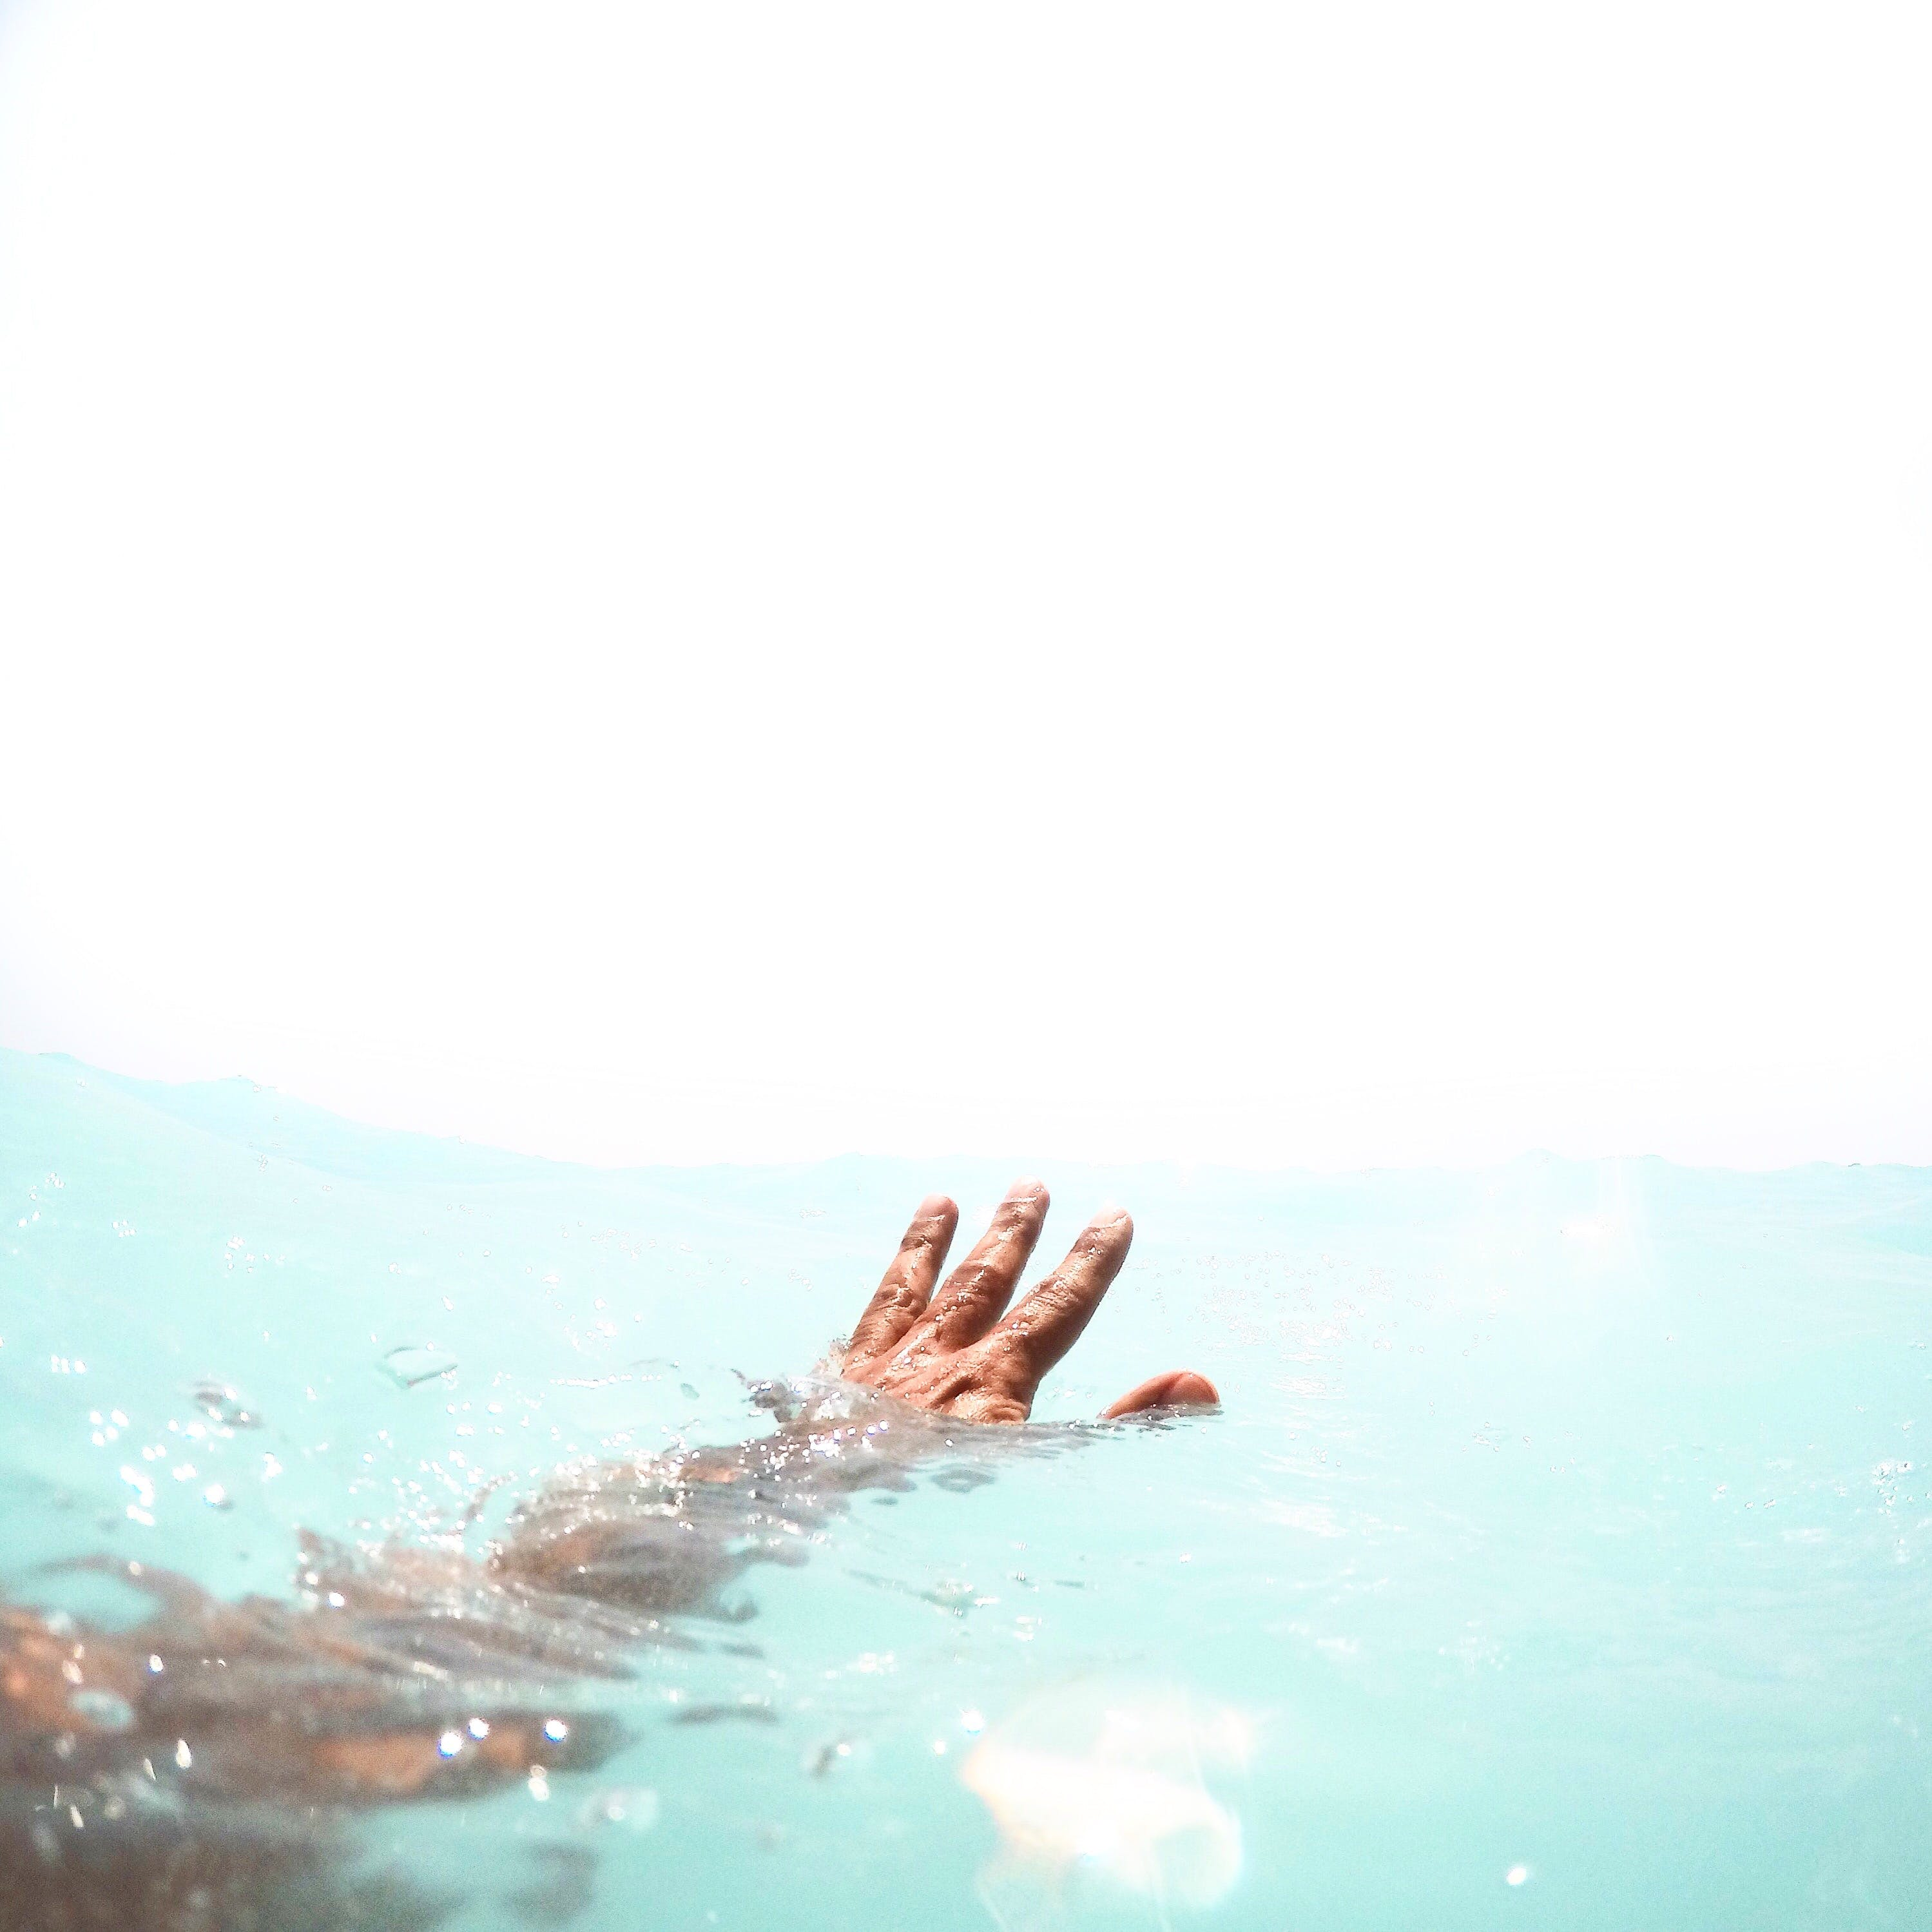 Person Reaching Out on Water